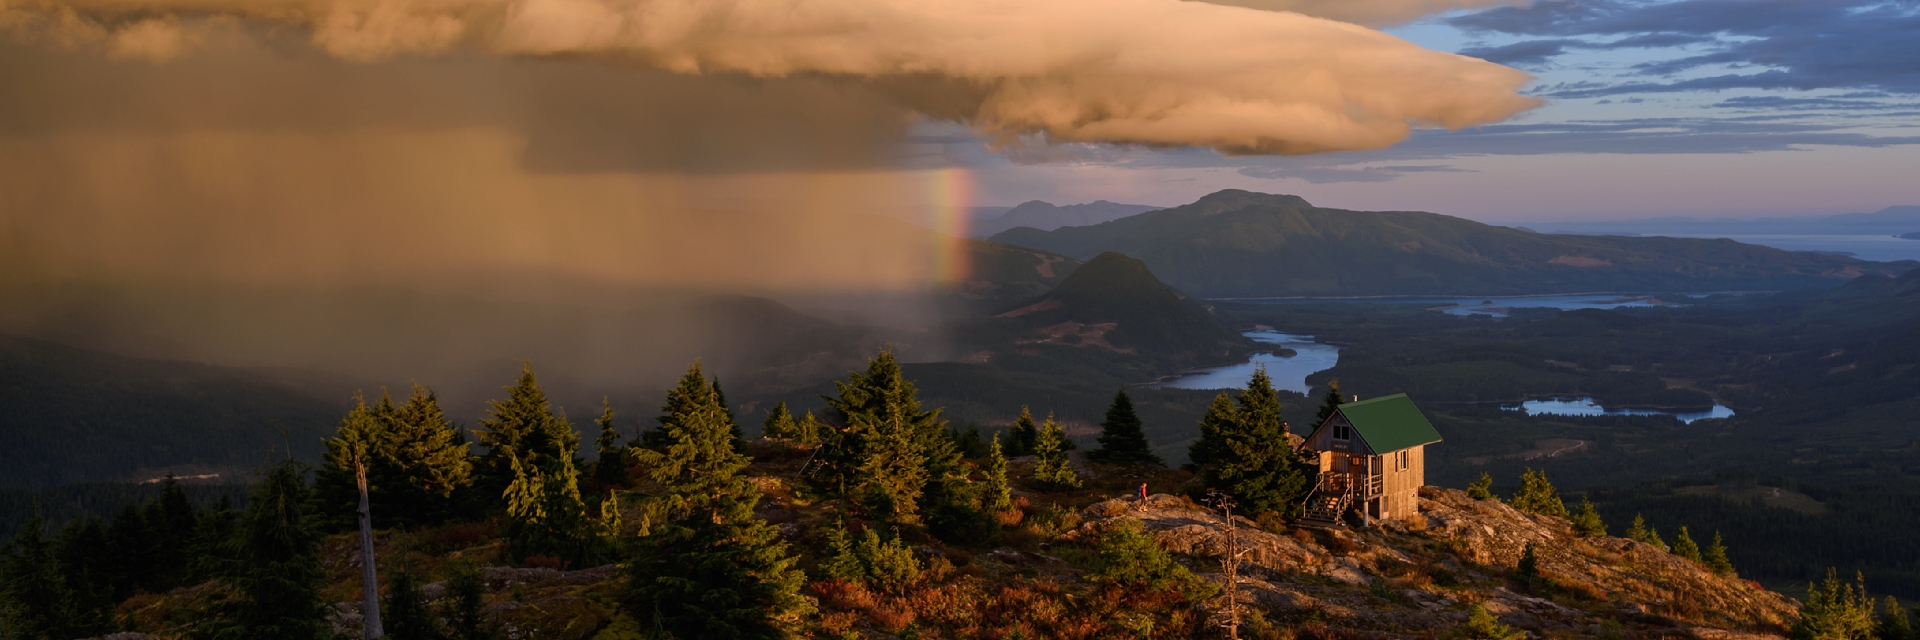 A storm front passes by Tin Hat Mountain producing a spectacular rainbow over the Tin Hat Hut.